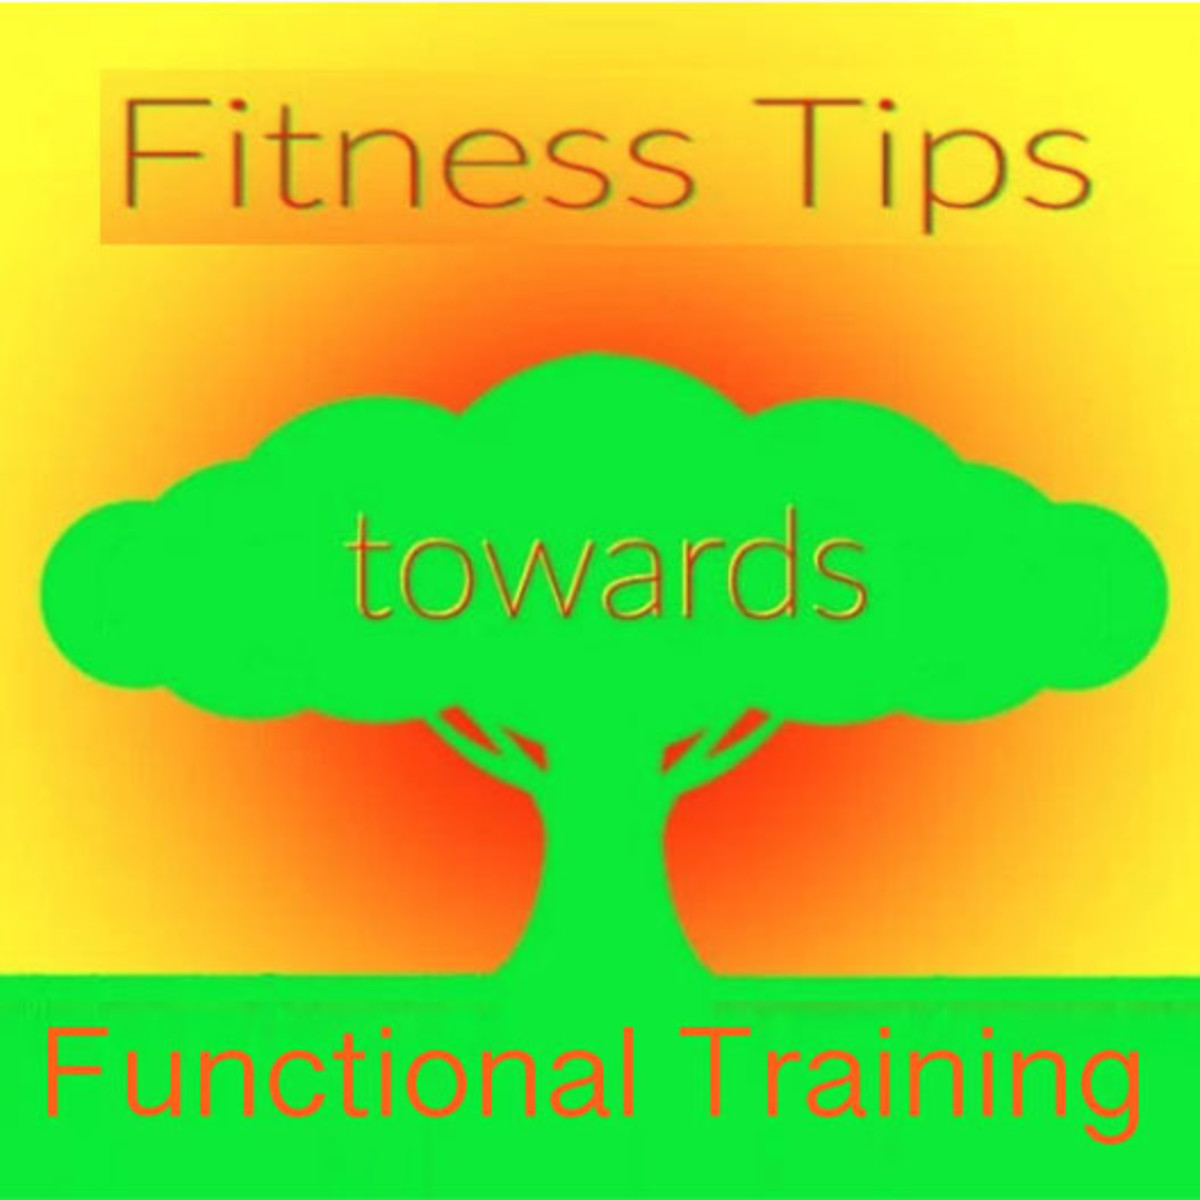 Functional Training During Daily Activities–6 Useful Tips